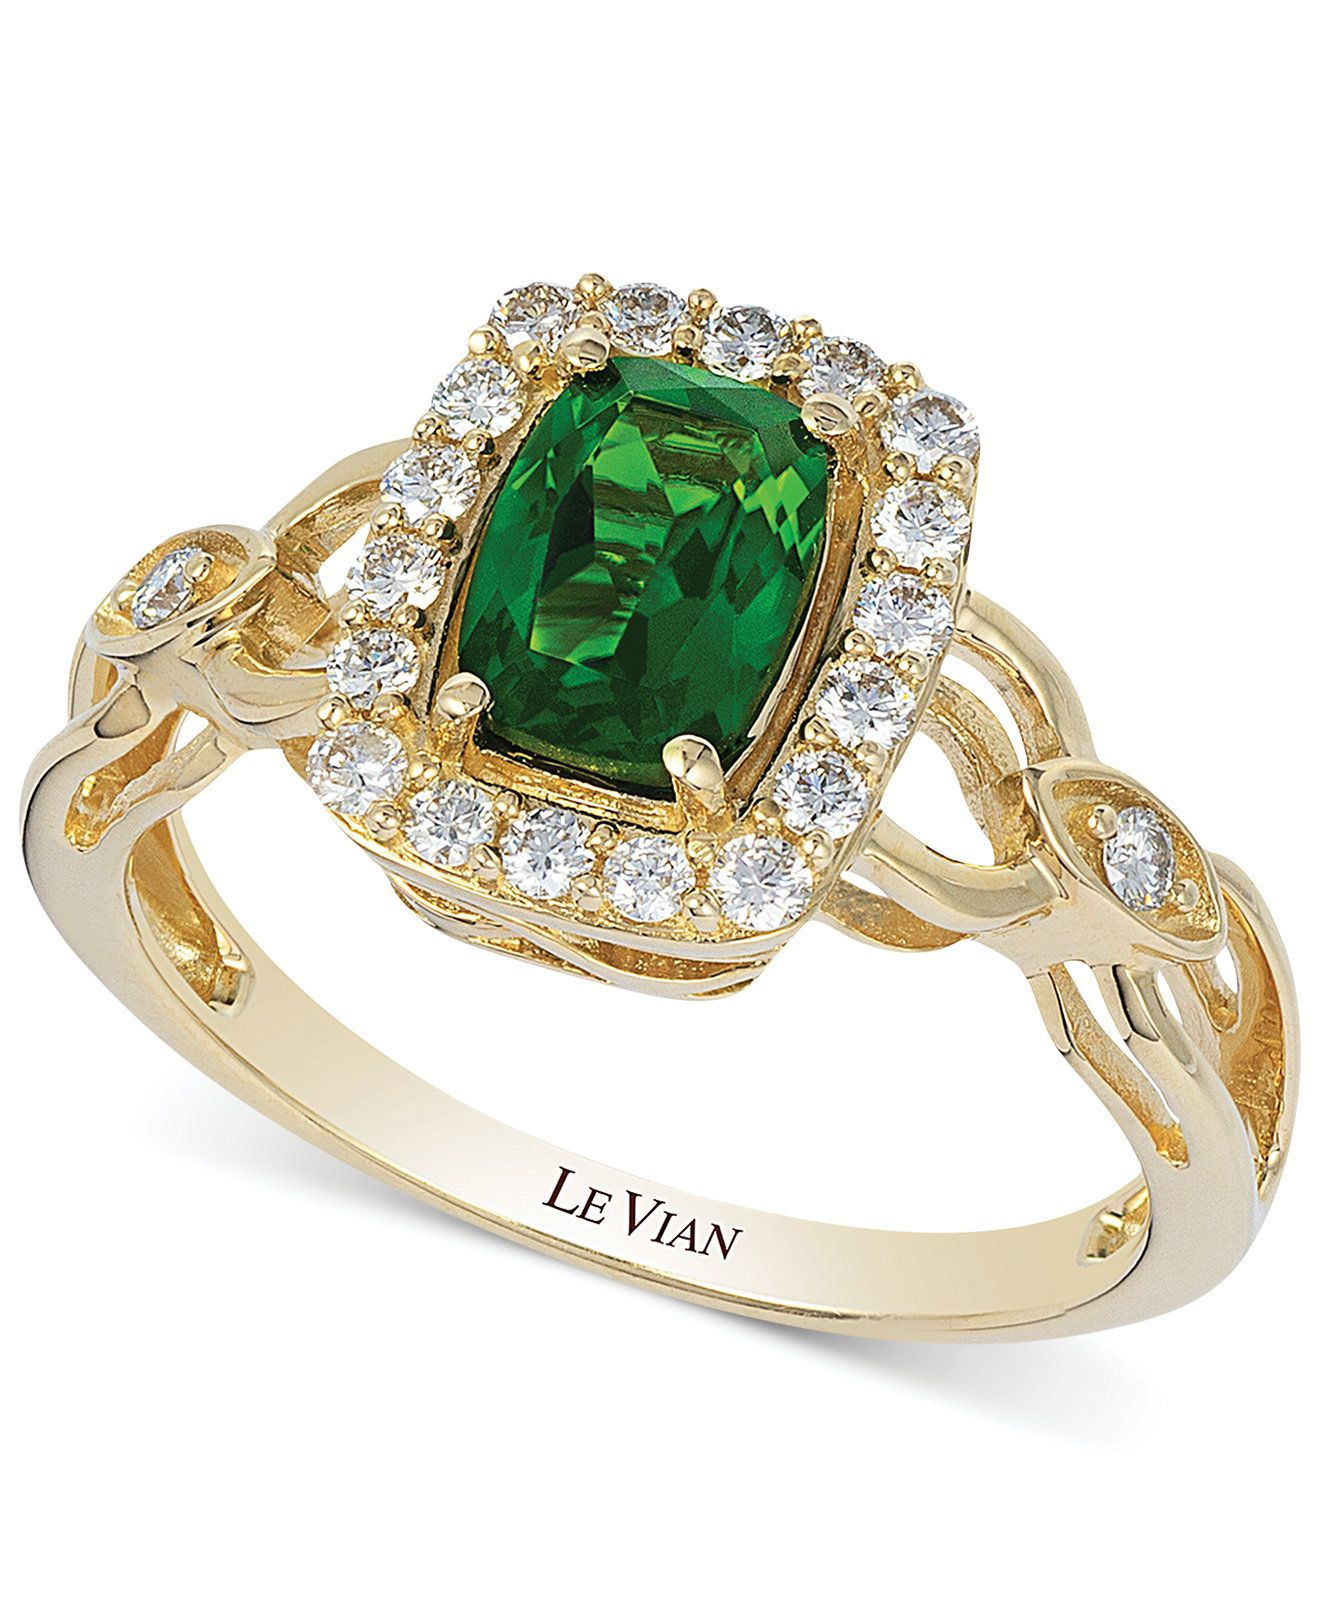 Le Vian Chrome Diopside 3 4 ct t w and Diamond 1 3 ct t w